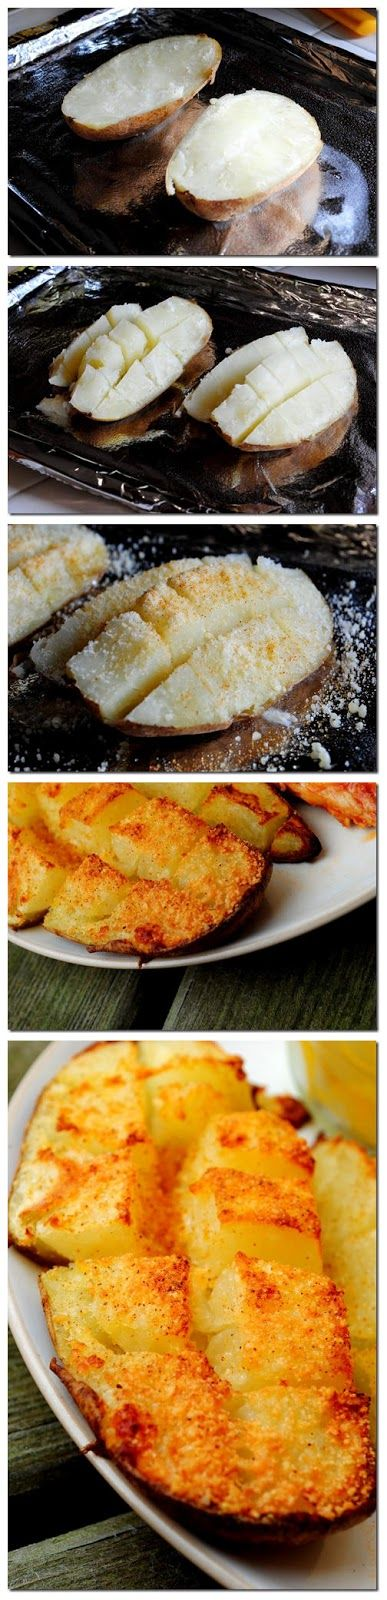 Seasoned Roasted Potatoes- cook in microwave, cut, top cube, butter, salt, parmesan, broil 15 minutes.